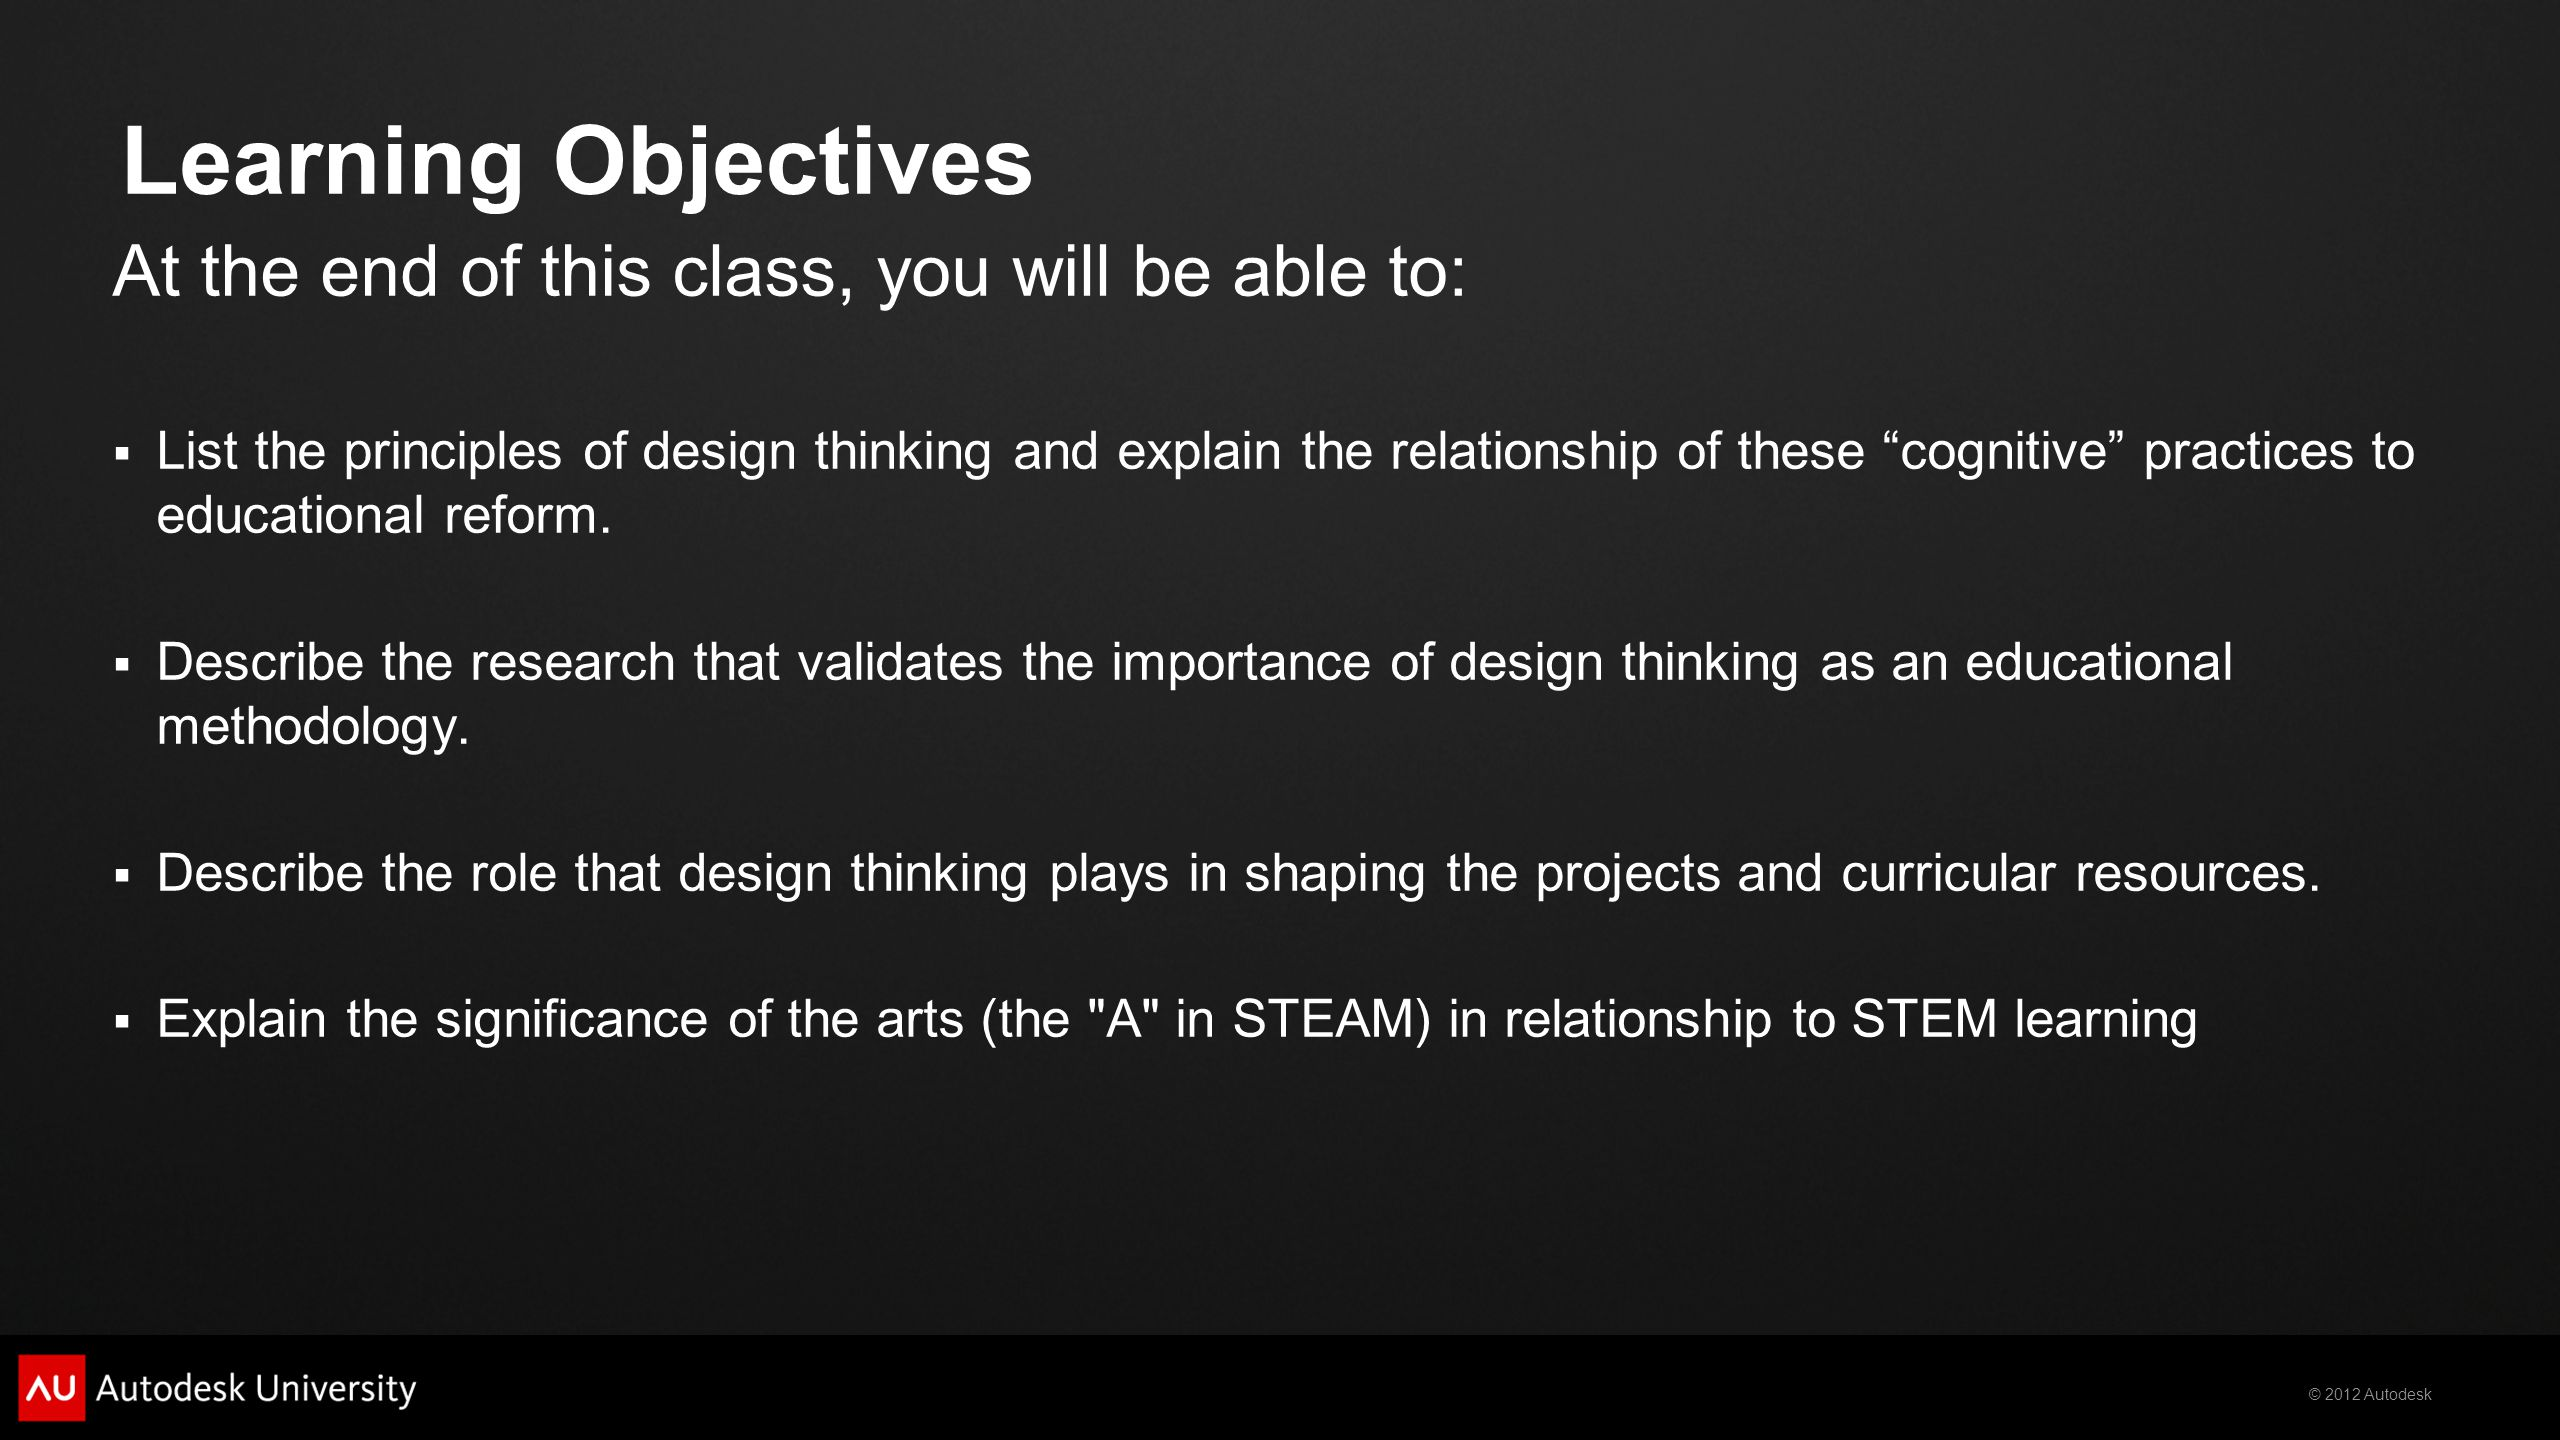 © 2012 Autodesk Learning Objectives At the end of this class, you will be able to:  List the principles of design thinking and explain the relationship of these cognitive practices to educational reform.